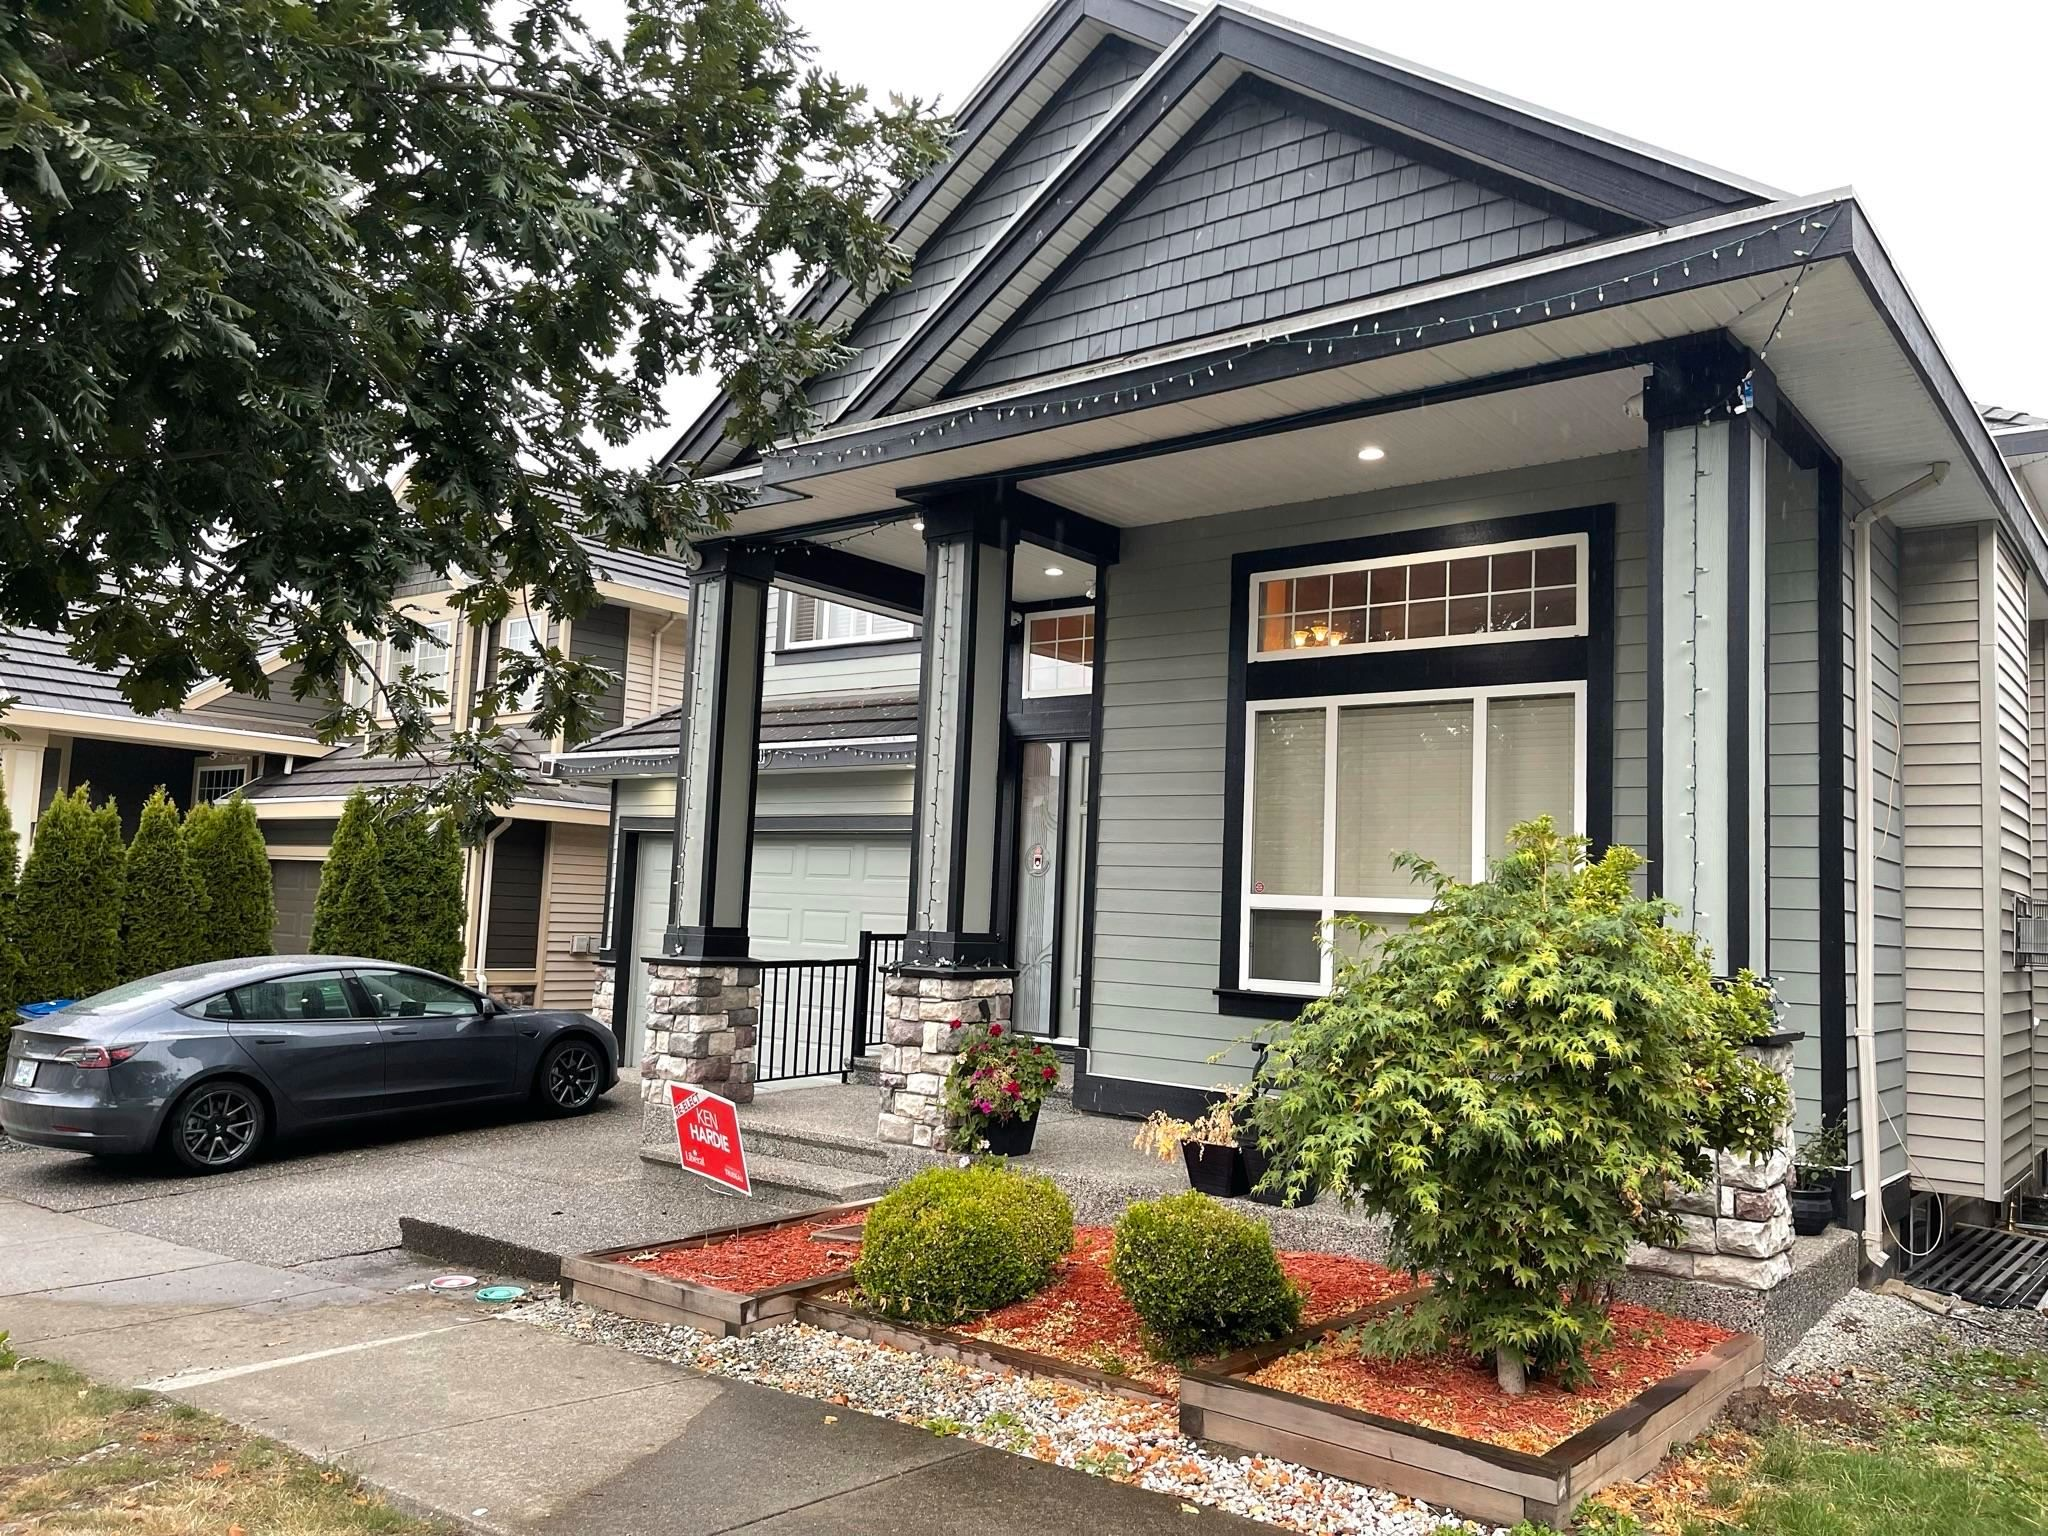 Main Photo: 7690 146A Street in Surrey: East Newton House for sale : MLS®# R2620300